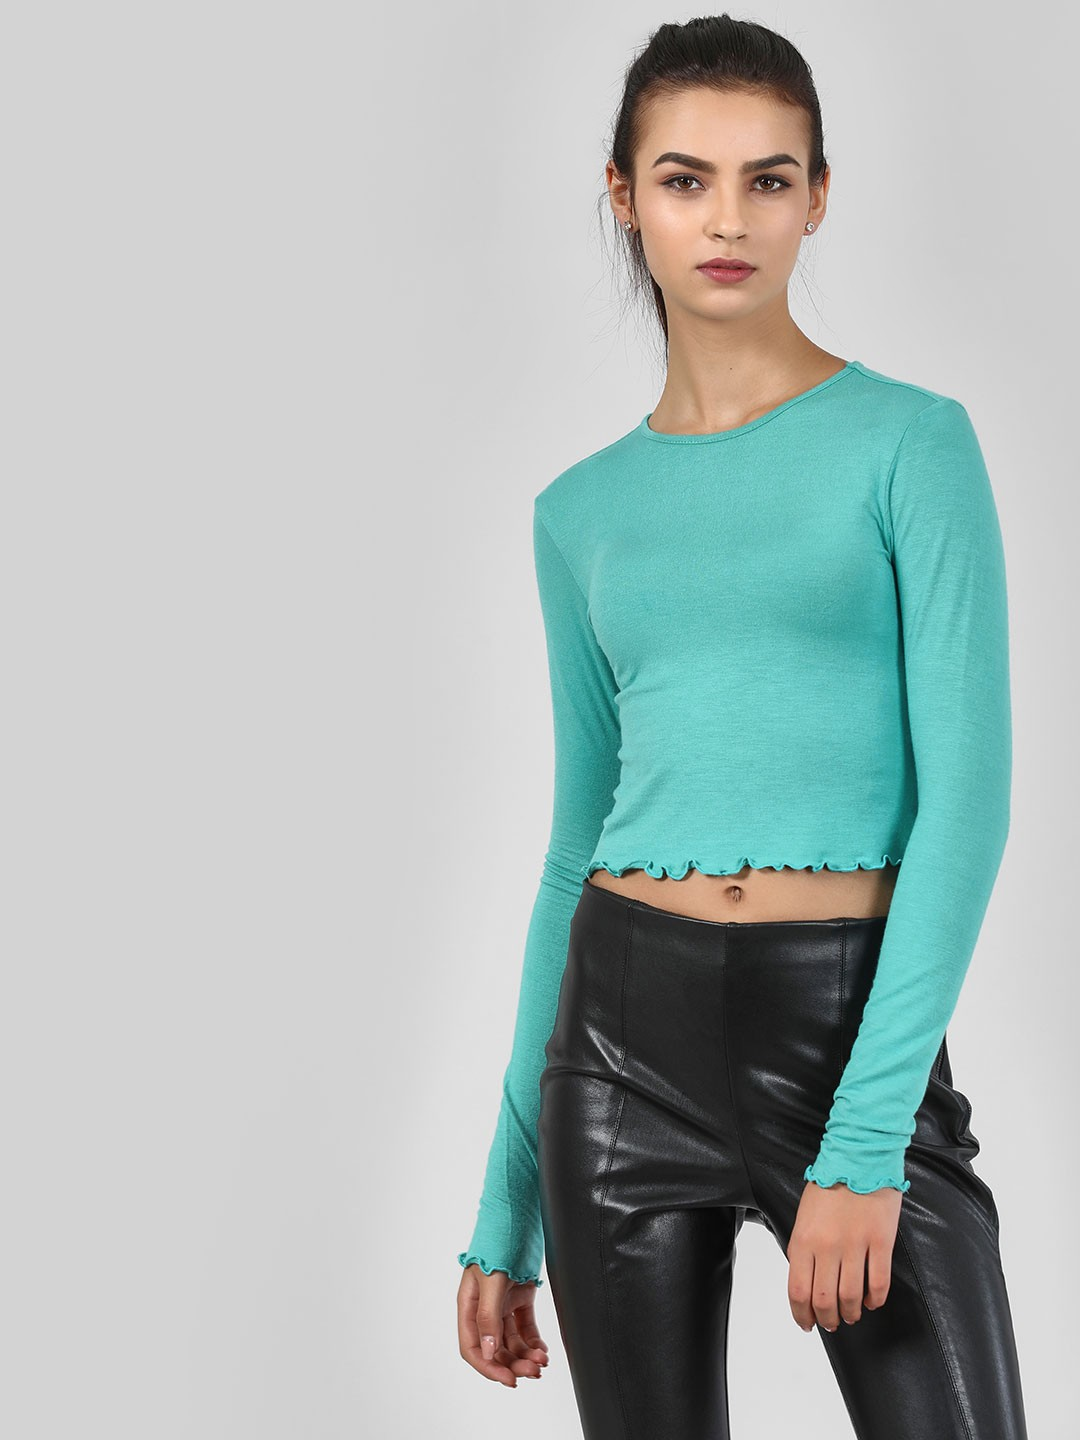 KOOVS Teal Round Neck Crop Top 1